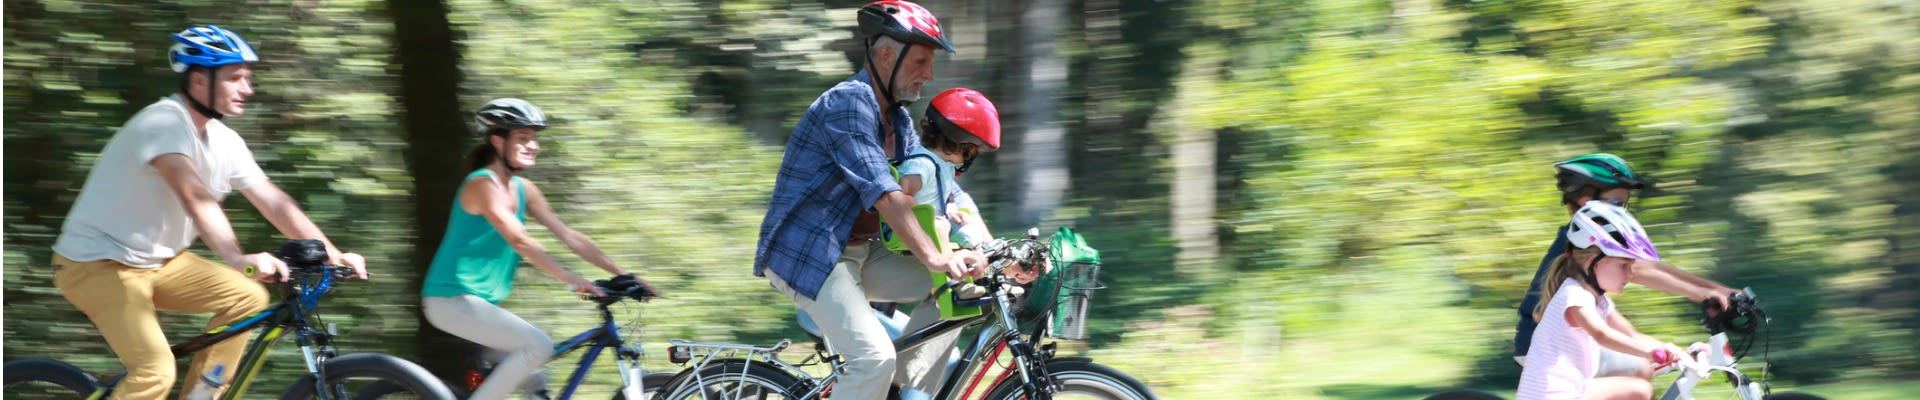 Shine Lawyers | Family cycling and wearing helmets